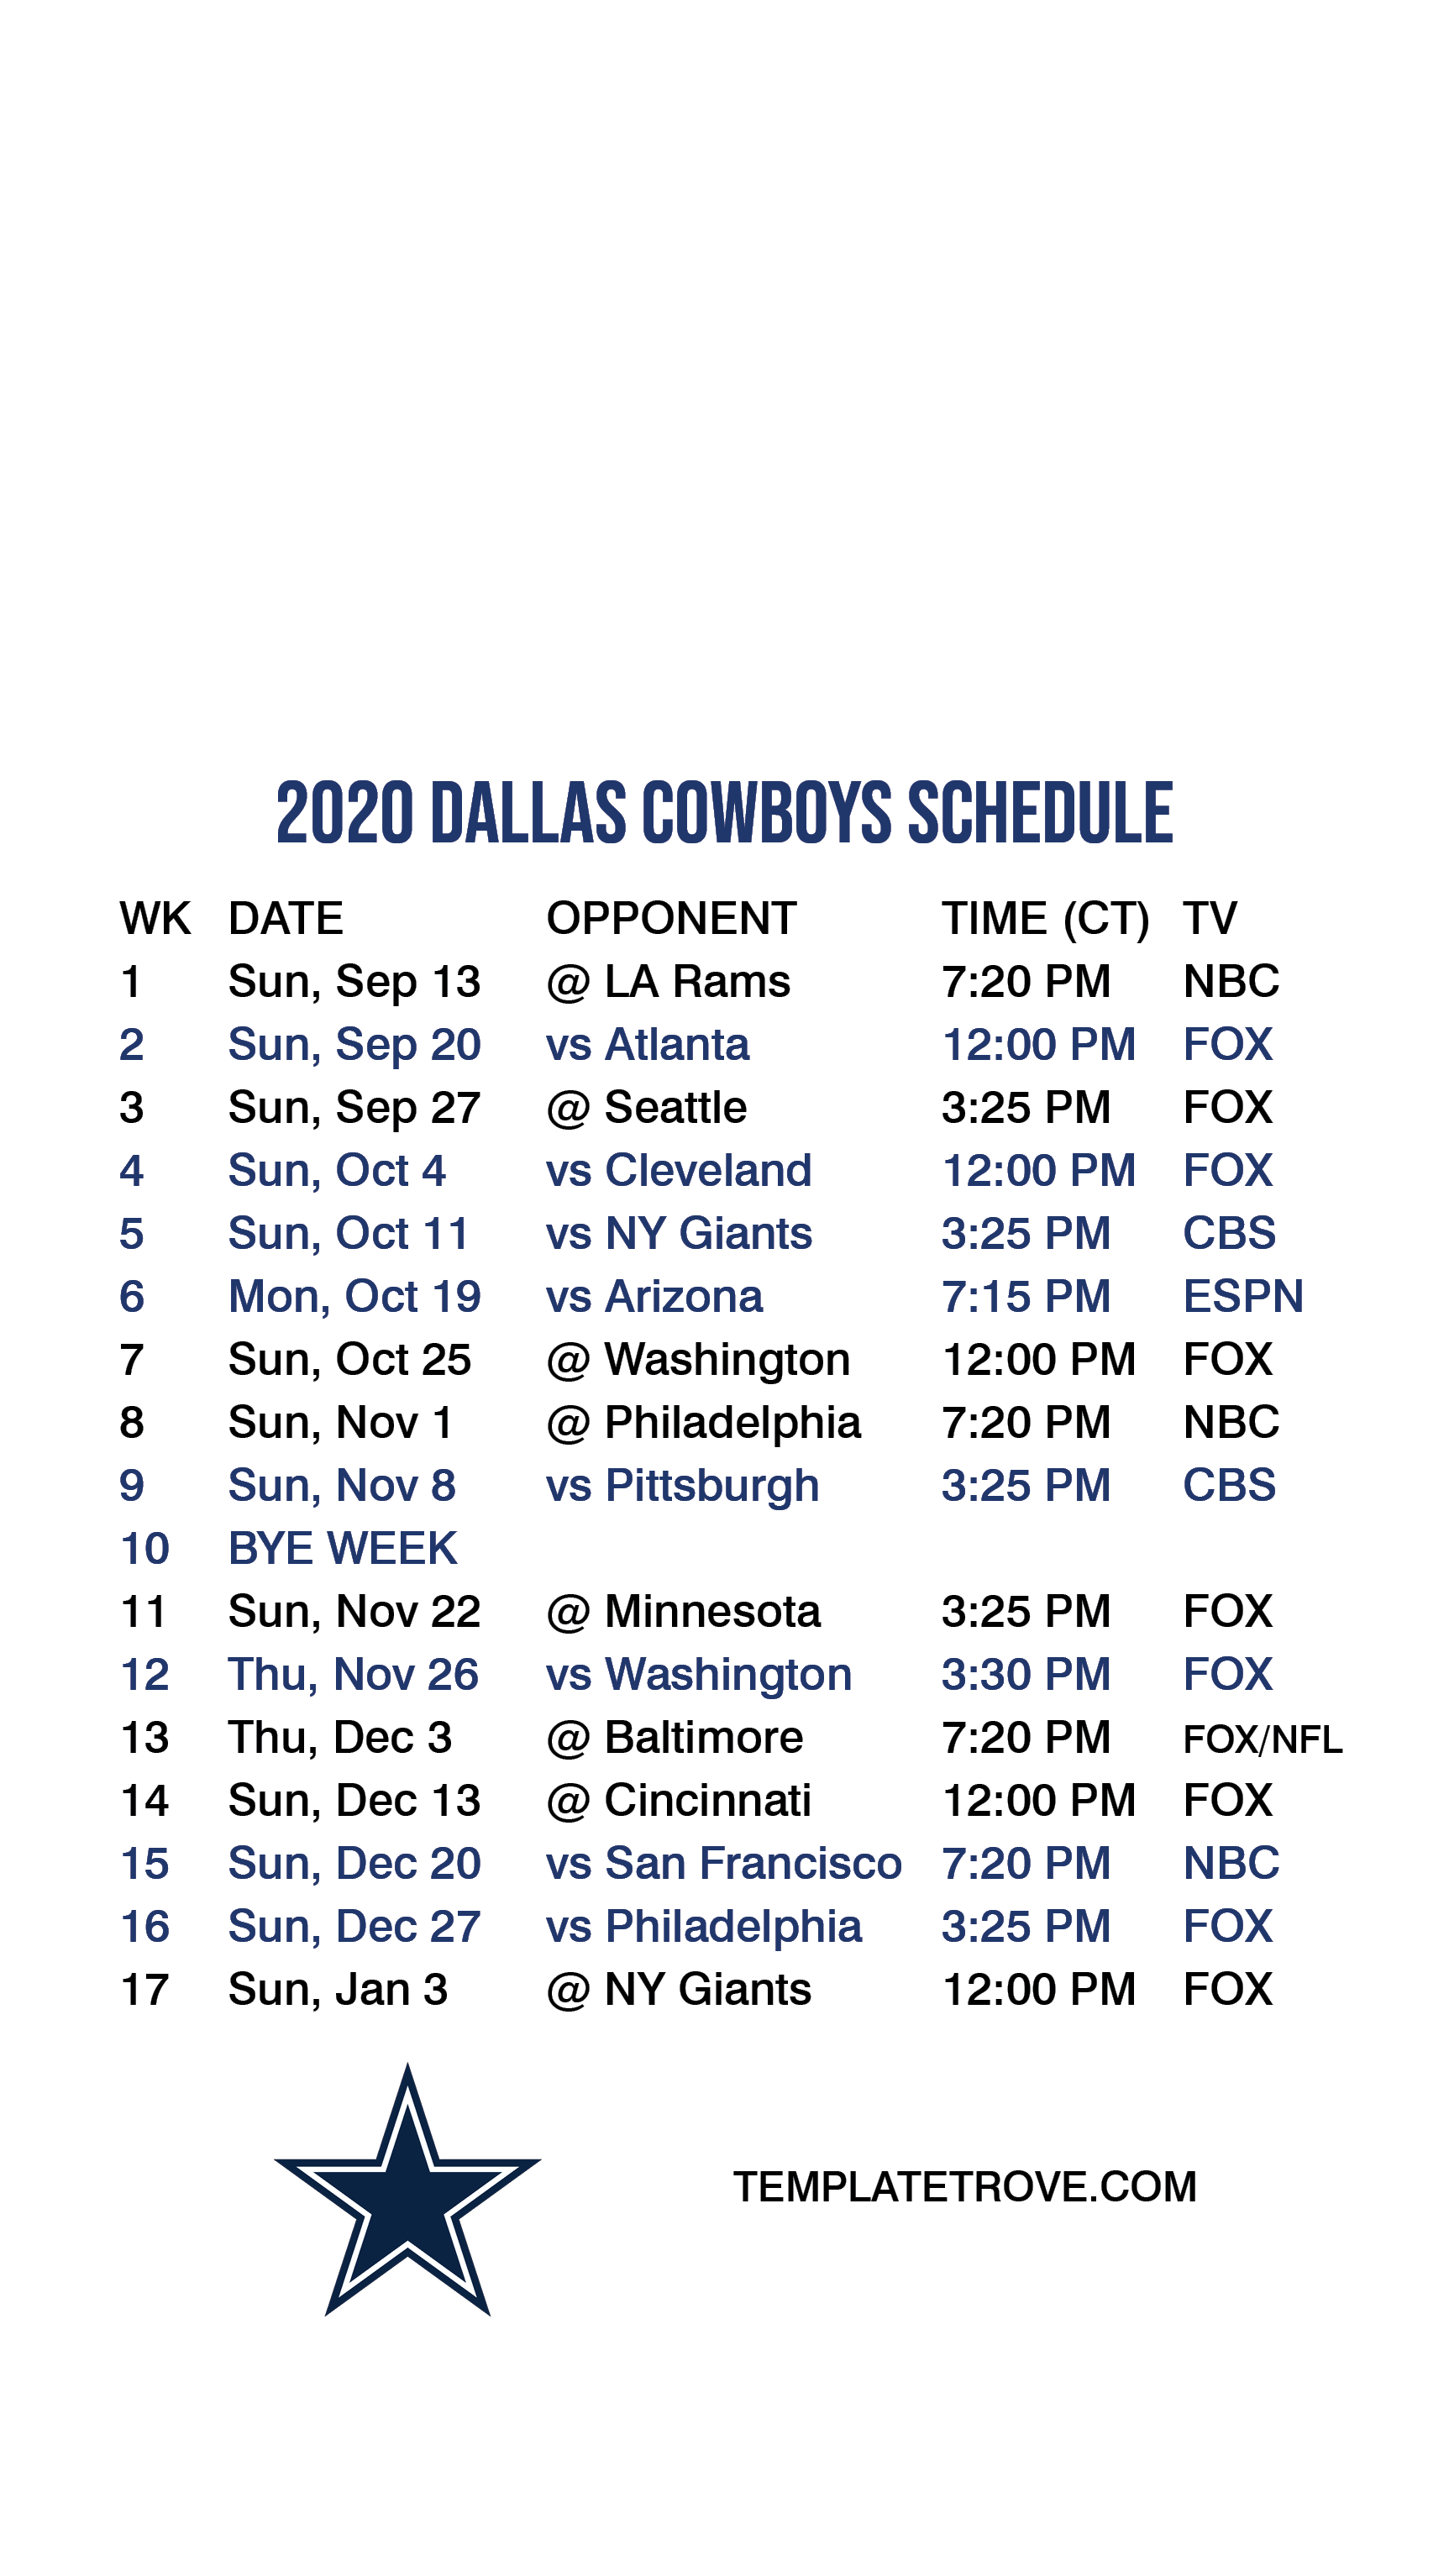 2020 2021 Dallas Cowboys Lock Screen Schedule For IPhone 6